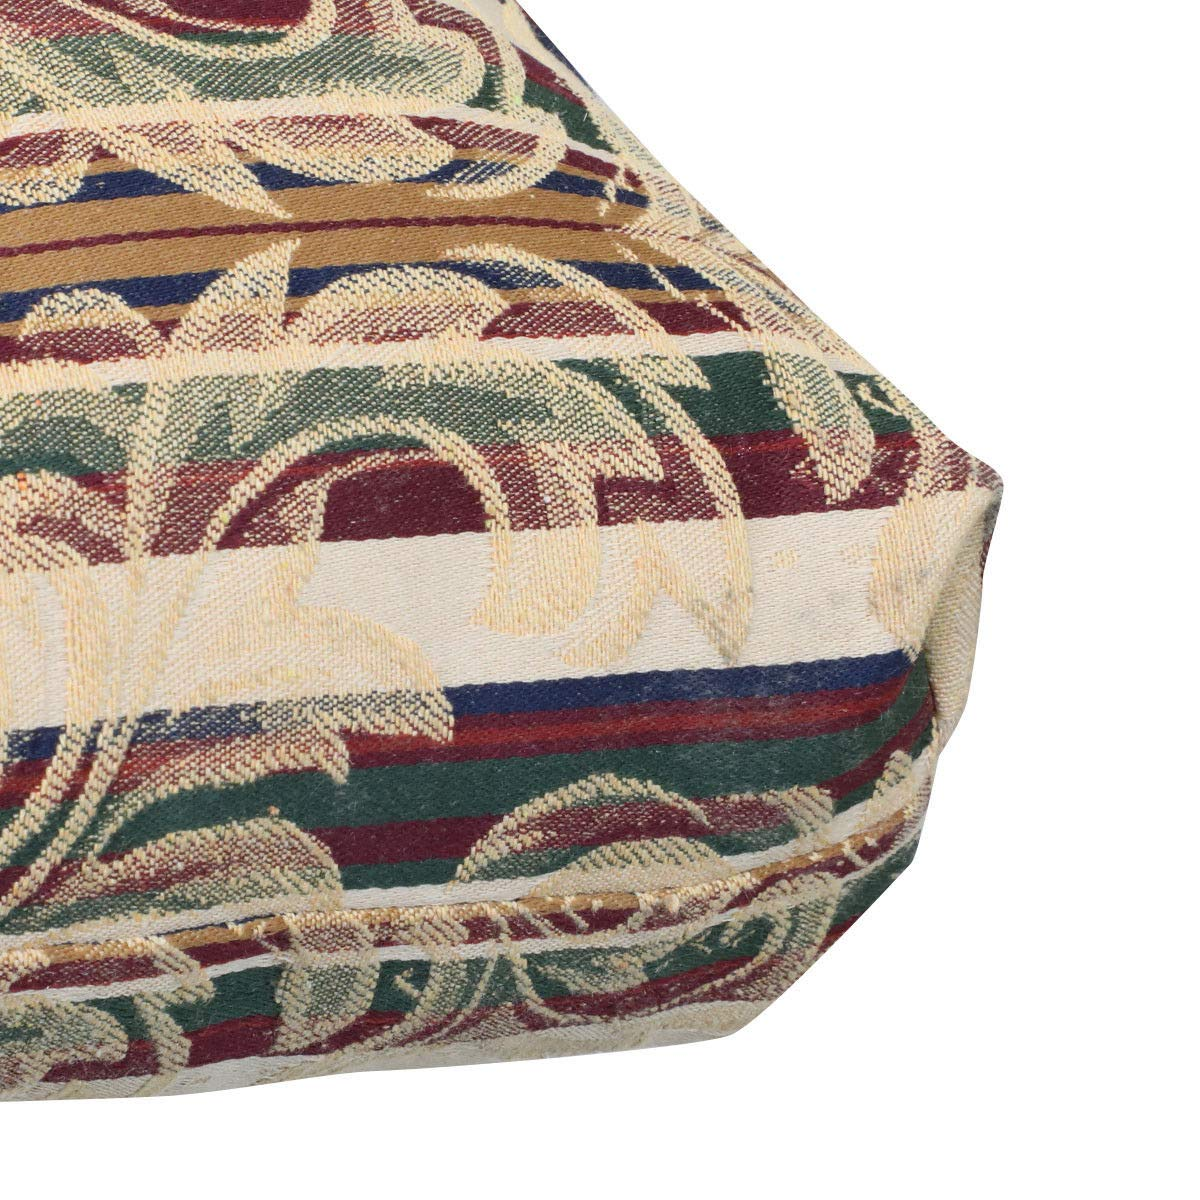 Prettyshop4246 Set of 2 Pcs Indoor Outdoor Wicker Warm Cushion Seat Pad Poolside Home Garden Patio Backyard Balcony Linen Fabric Made in USA Product Soap Maintain Easy Clean Brown Tone Color by Prettyshop4246 (Image #9)